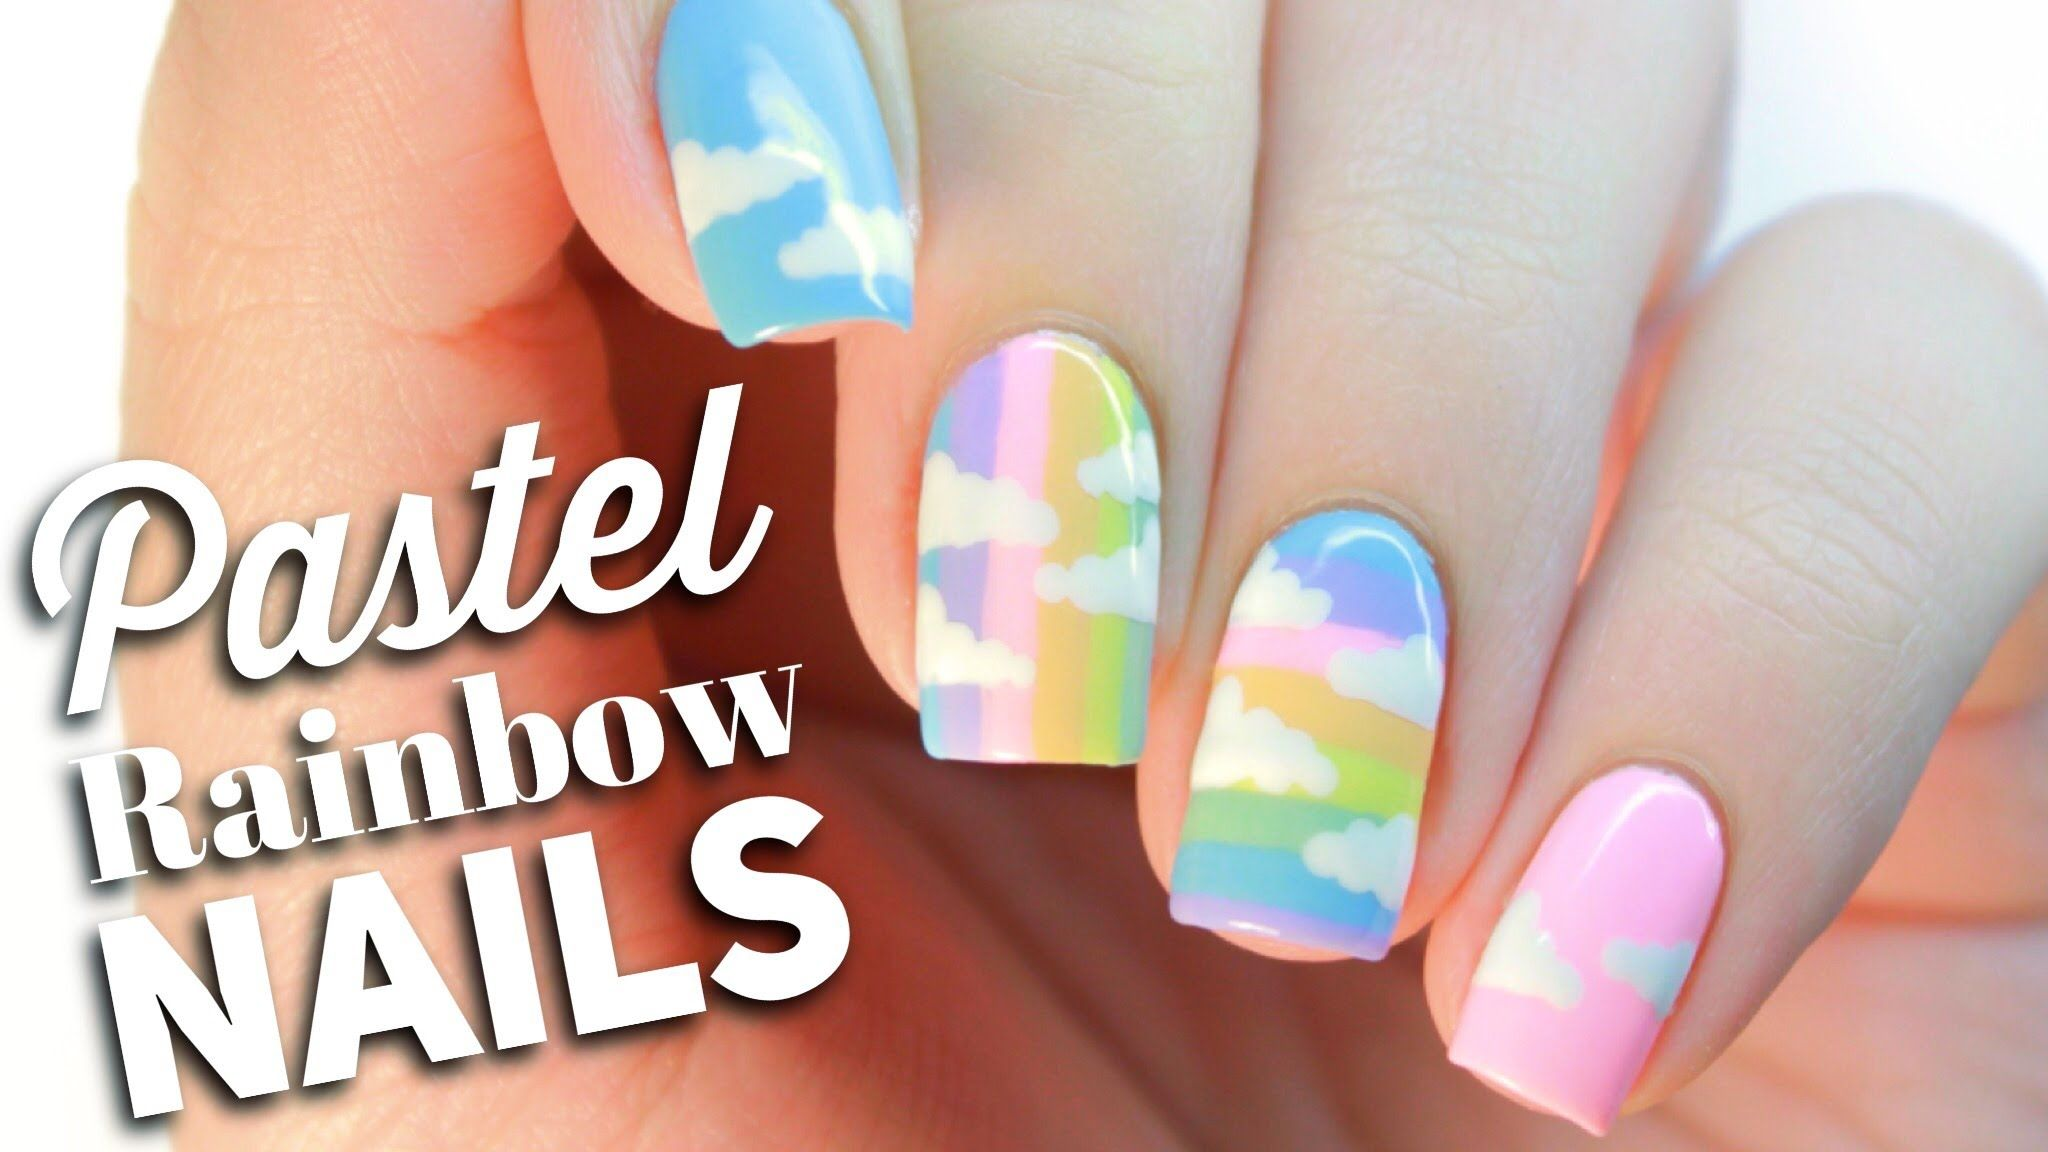 Pastel Rainbow Nail Art - Rainbow Nails | Pinterest - Nagelkunst ...